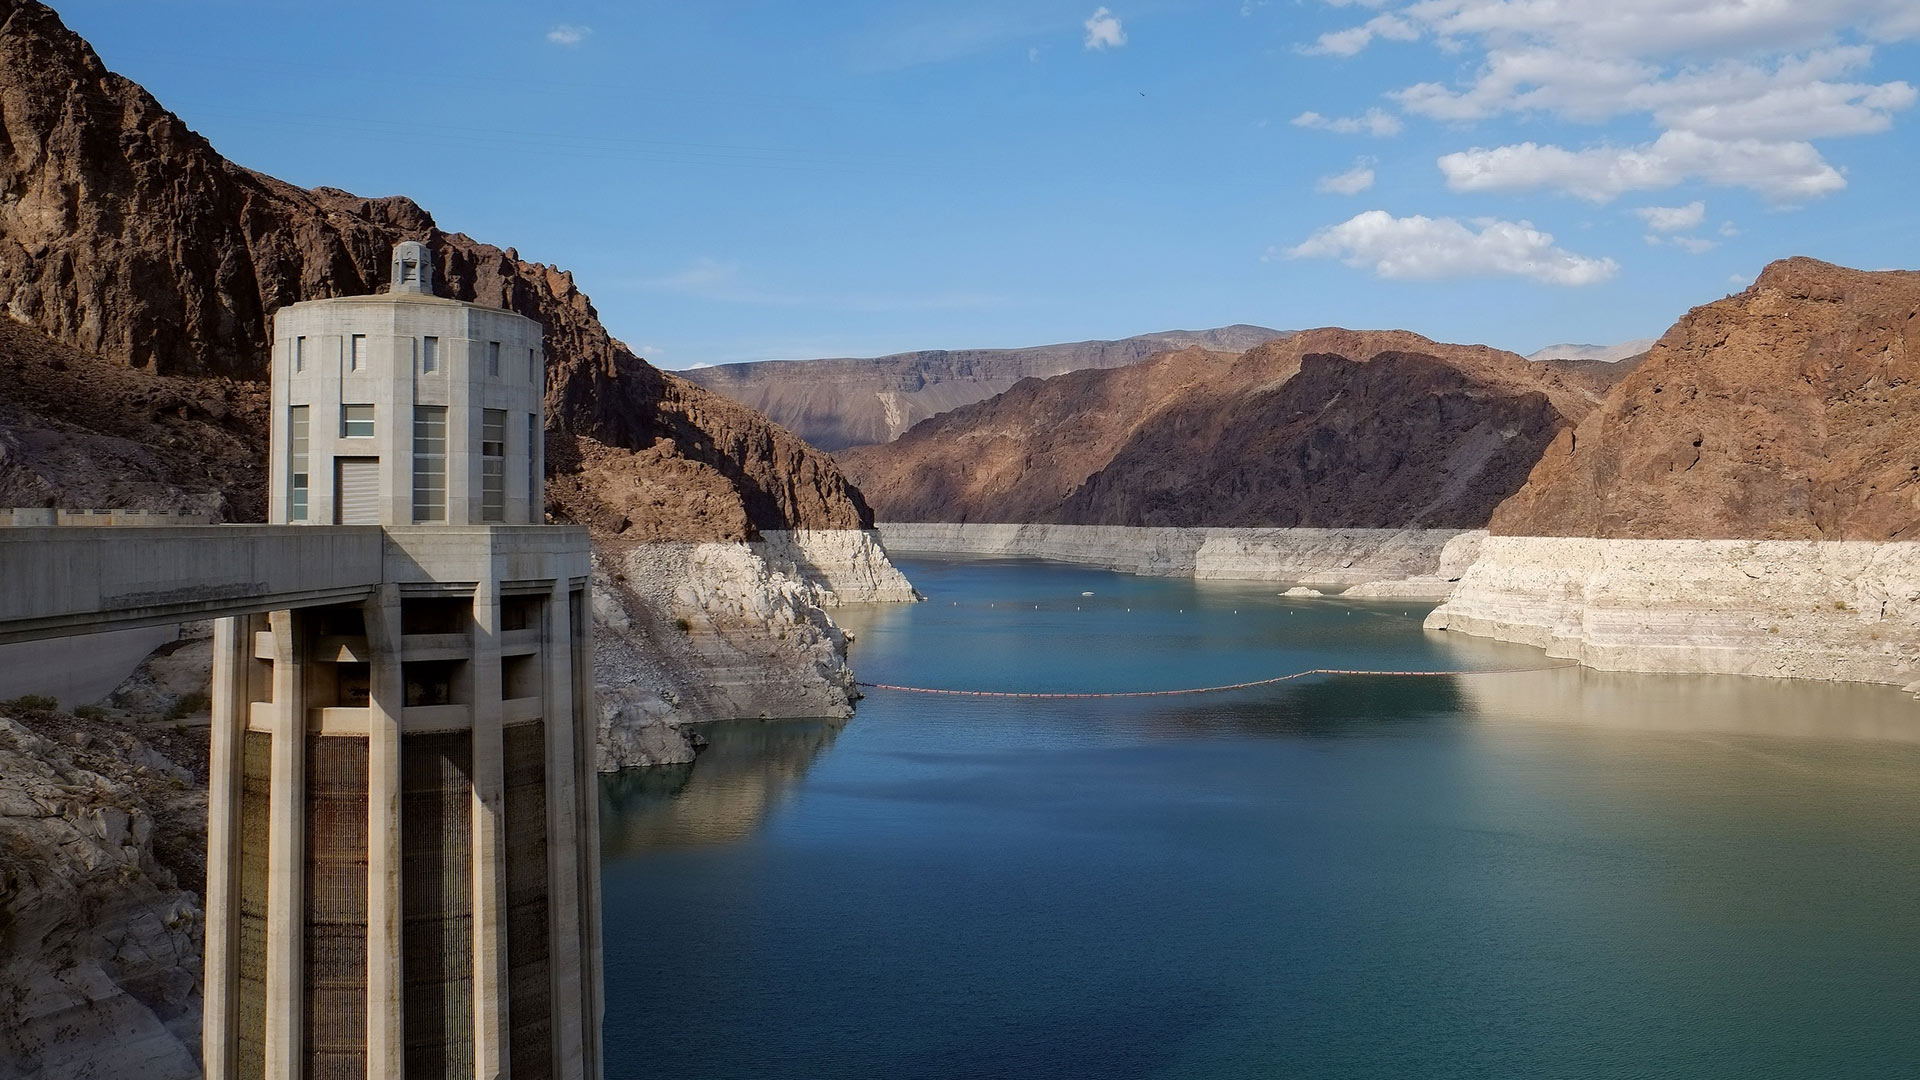 A view from the Lake Mead side of the Hoover Dam.